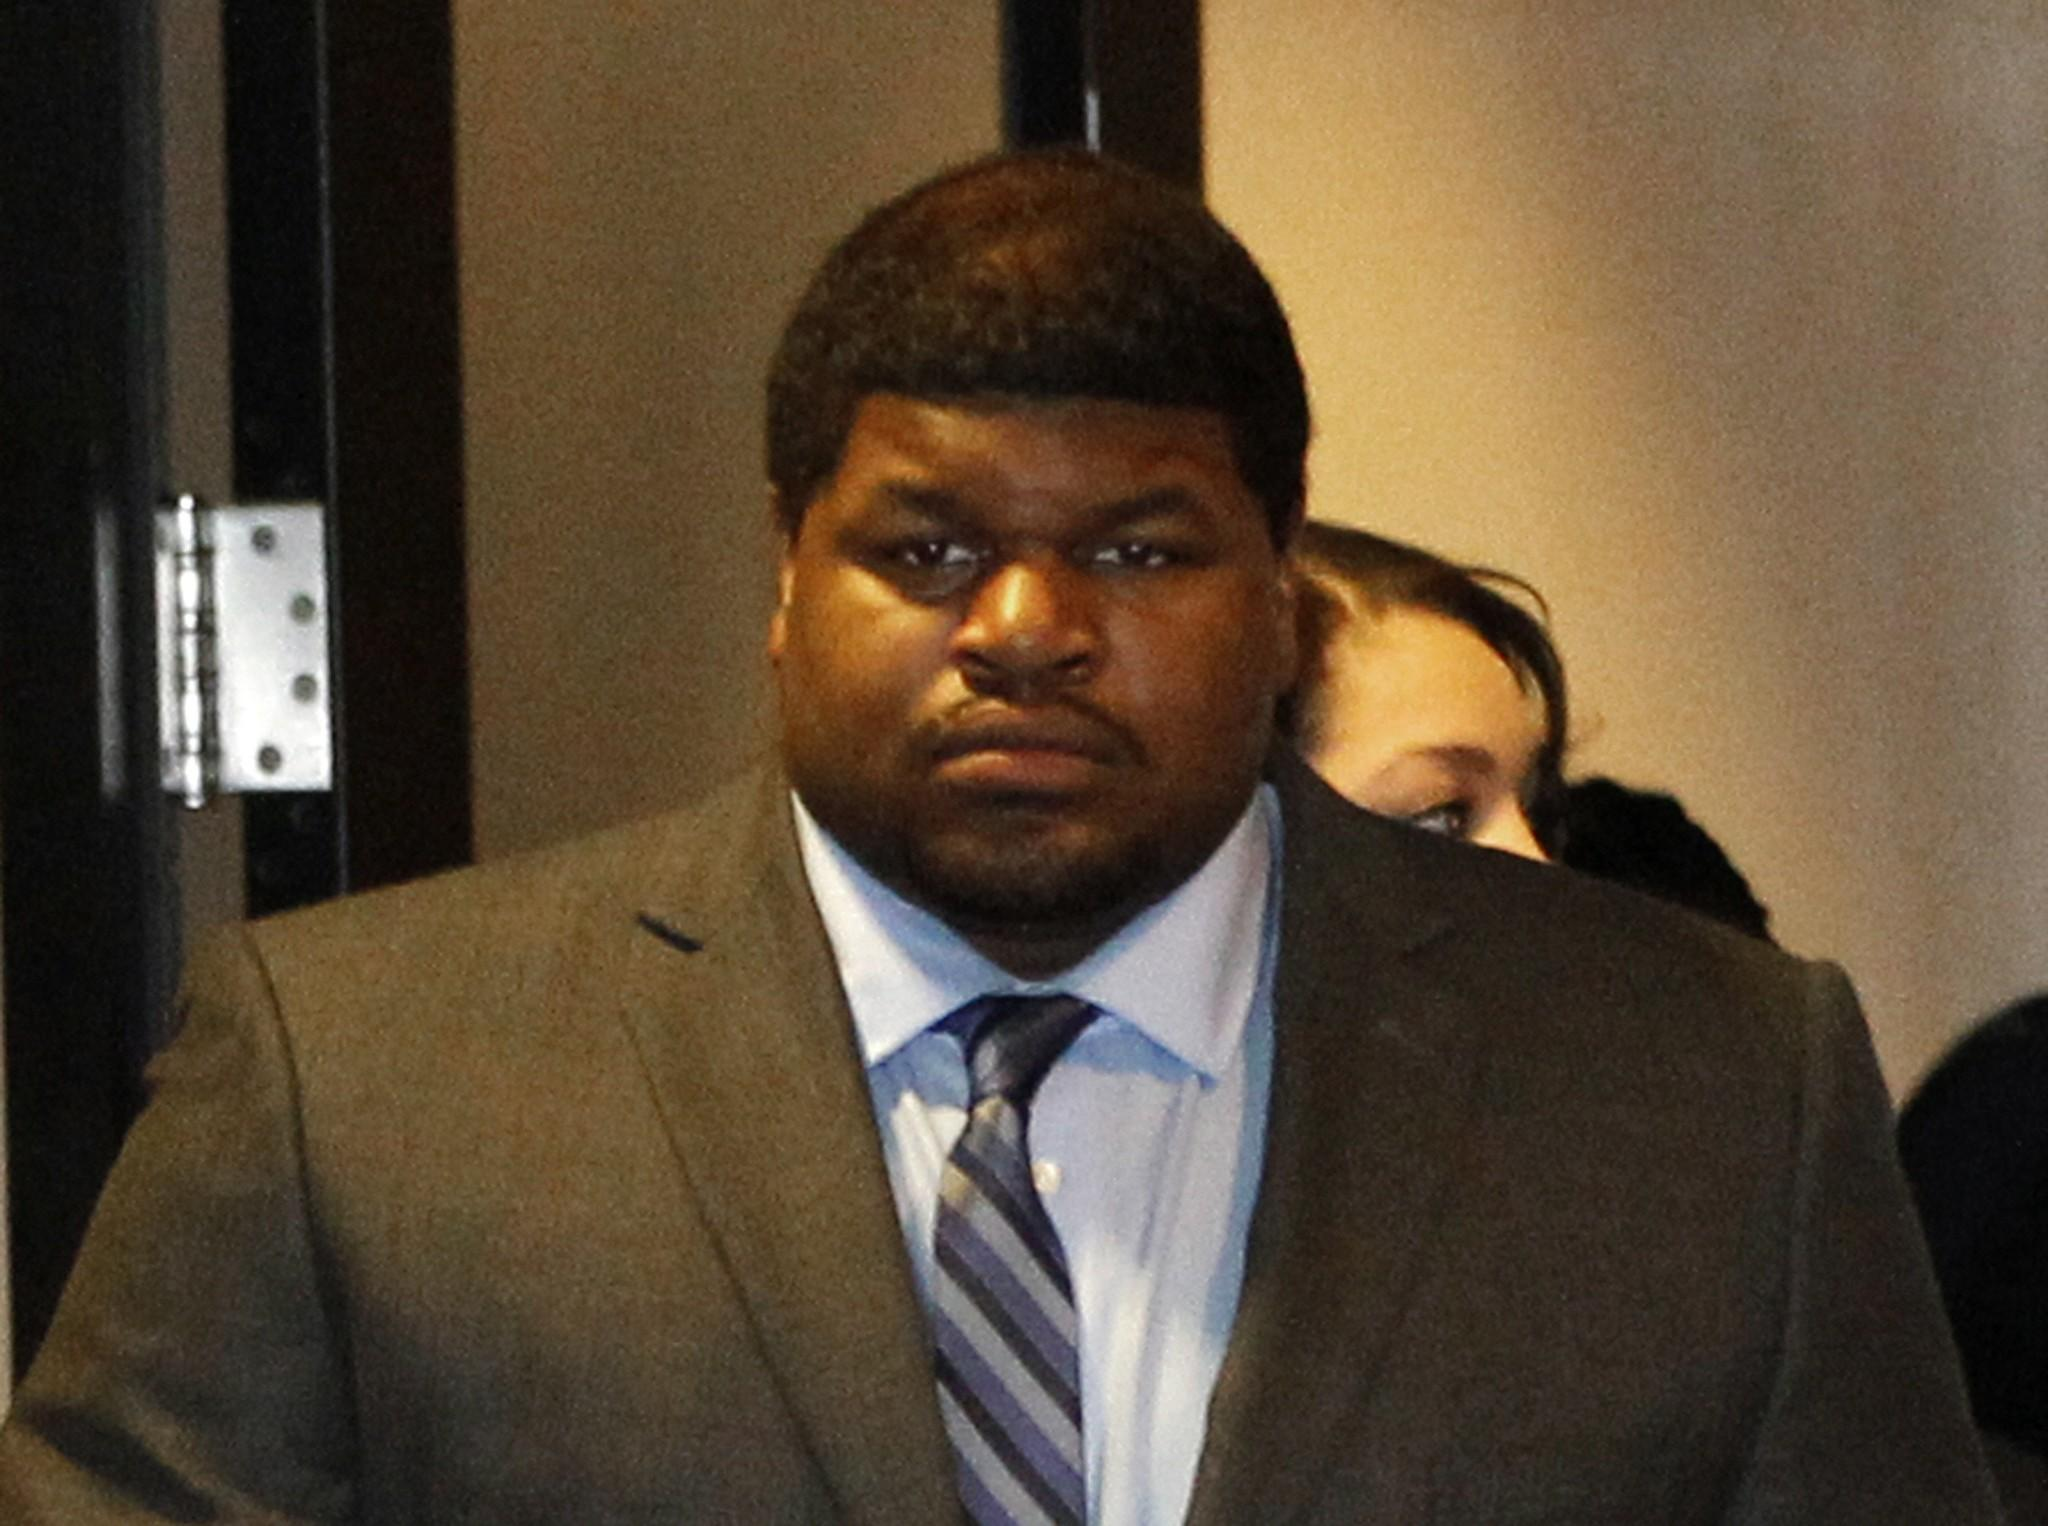 Former Cowboys player Josh Brent enters the courtroom in Dallas. Brent is facing intoxication manslaughter chargers after he crashed his car, killing his friend and teammate Jerry Brown in 2012.